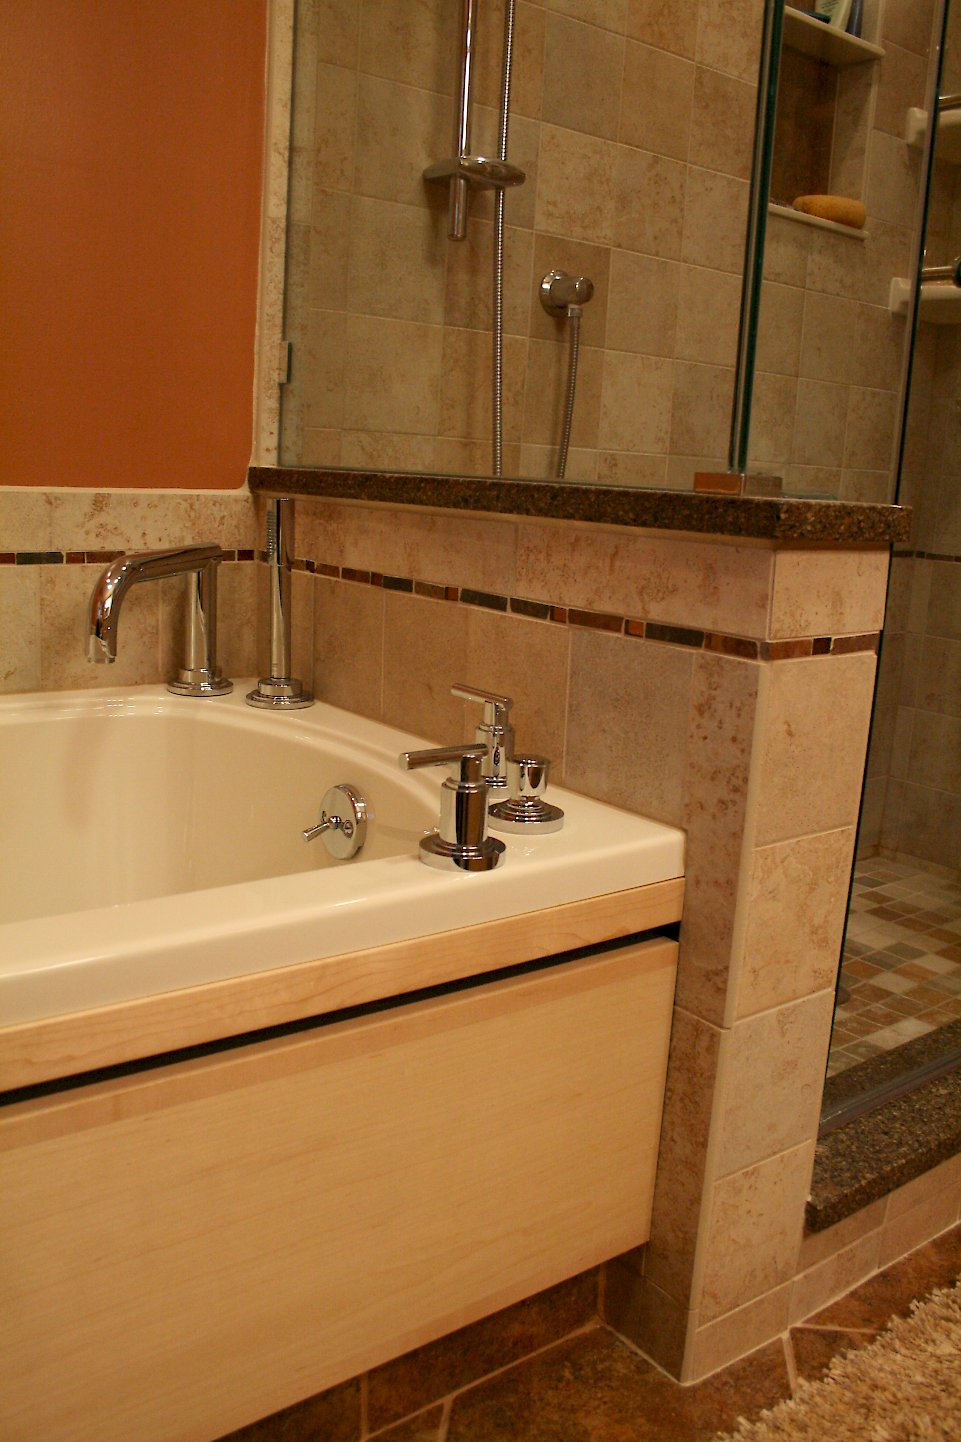 Deck mounted faucets on the tub.